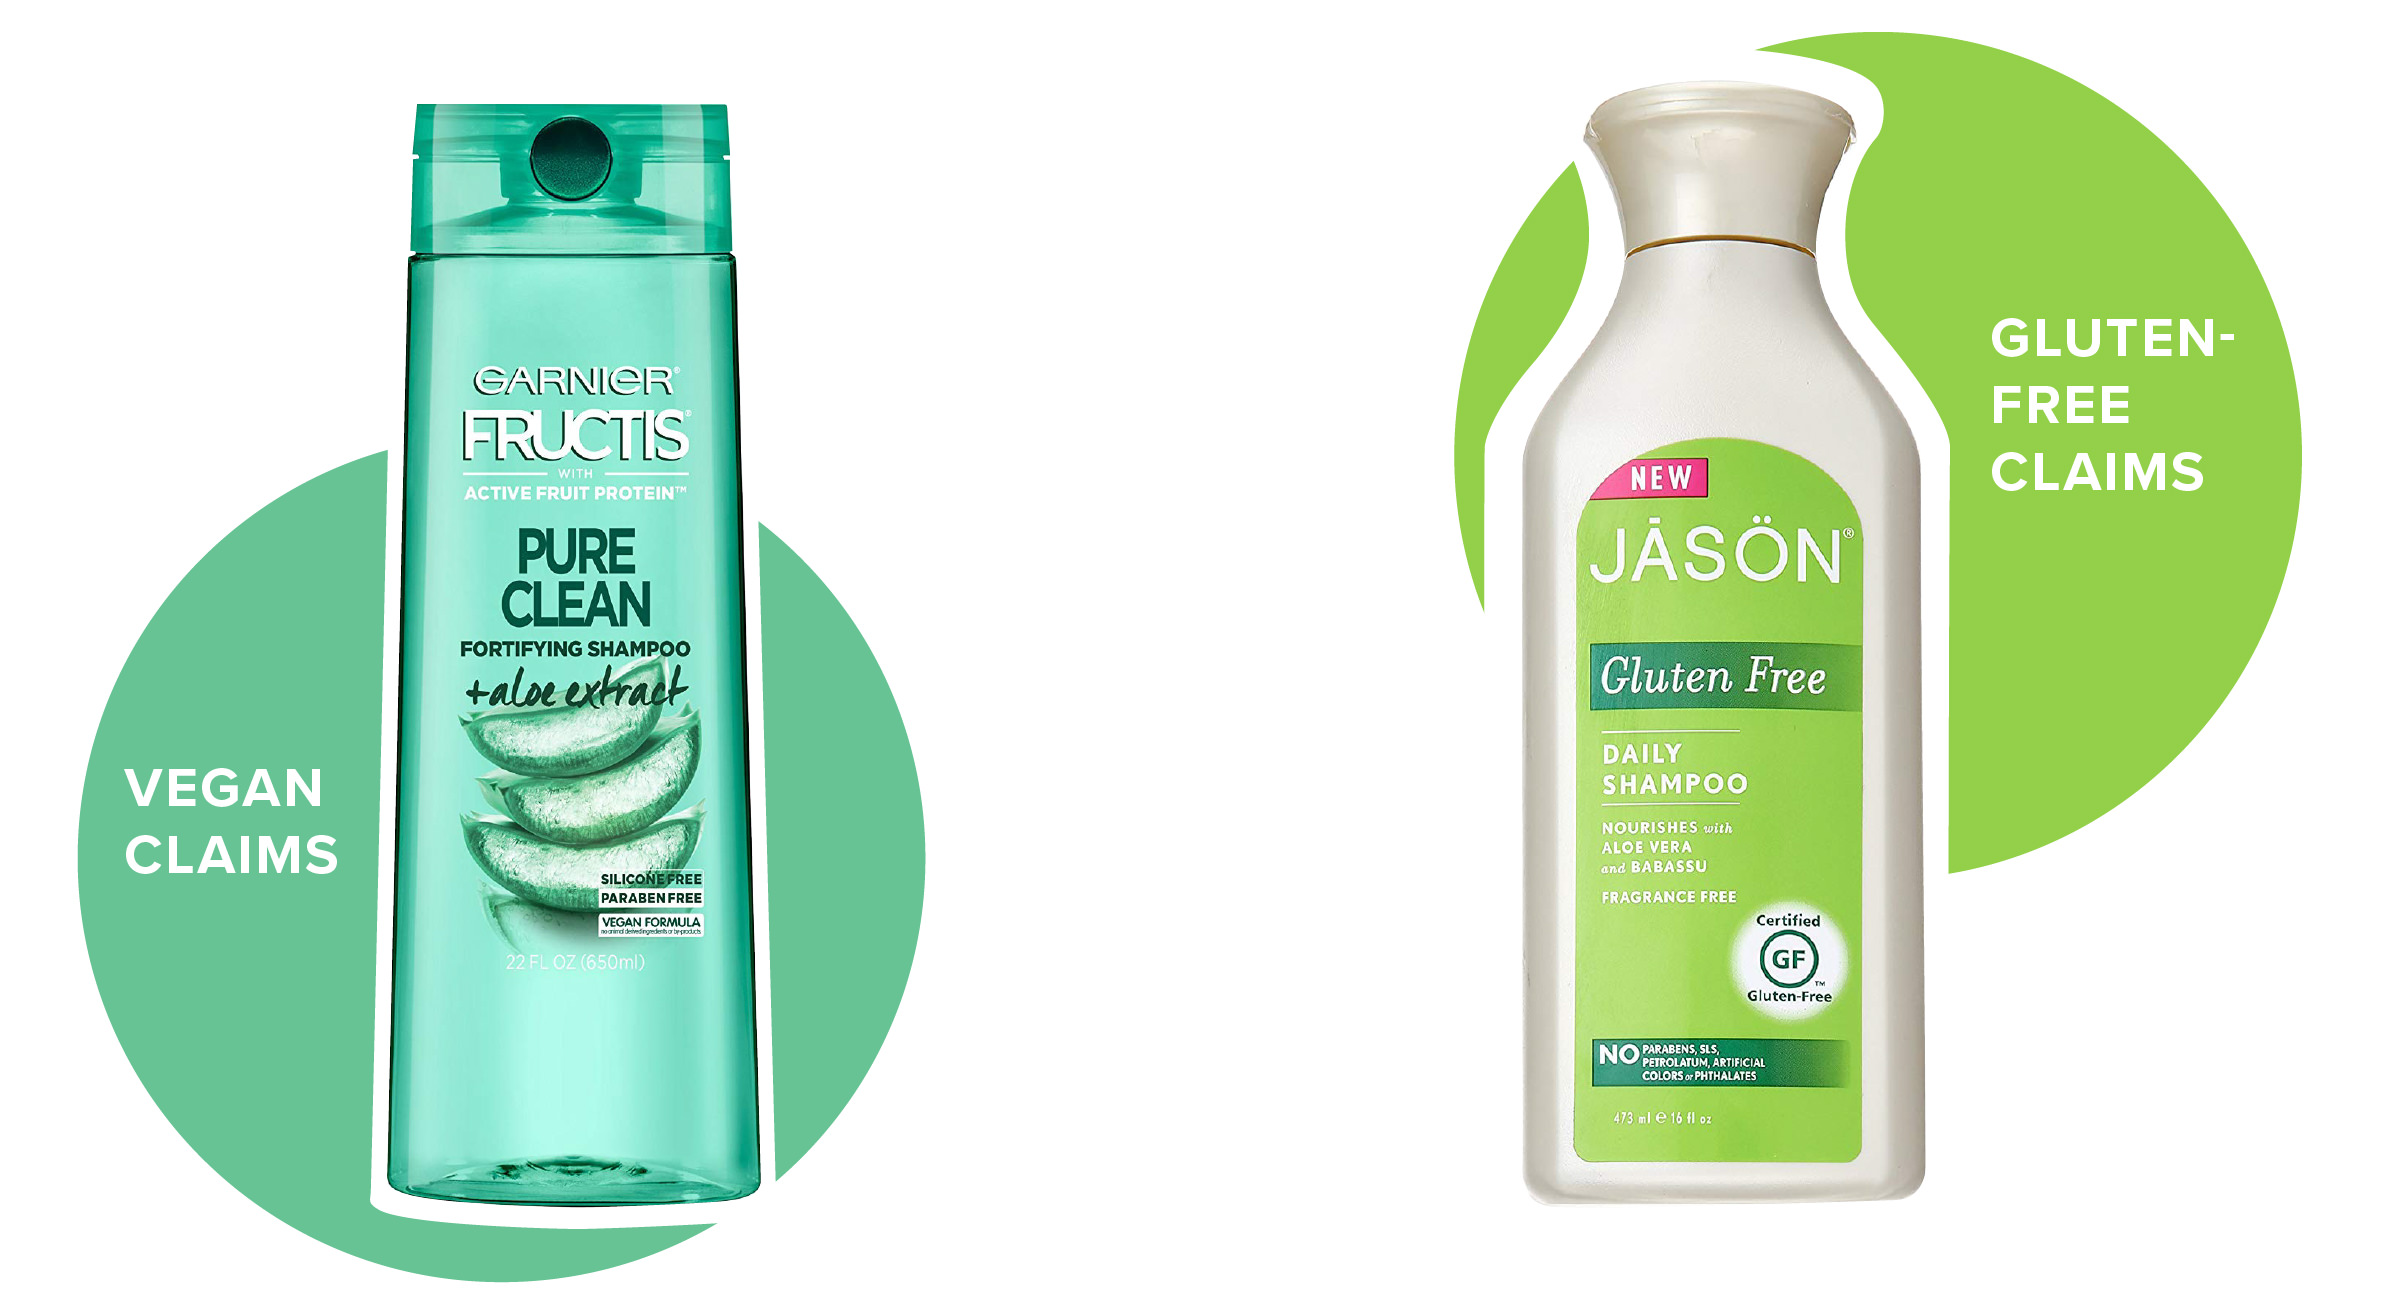 Shampoos with gluten-free and vegan claims: Garnier with a vegan formula and Jason with an apparent gluten-free claim